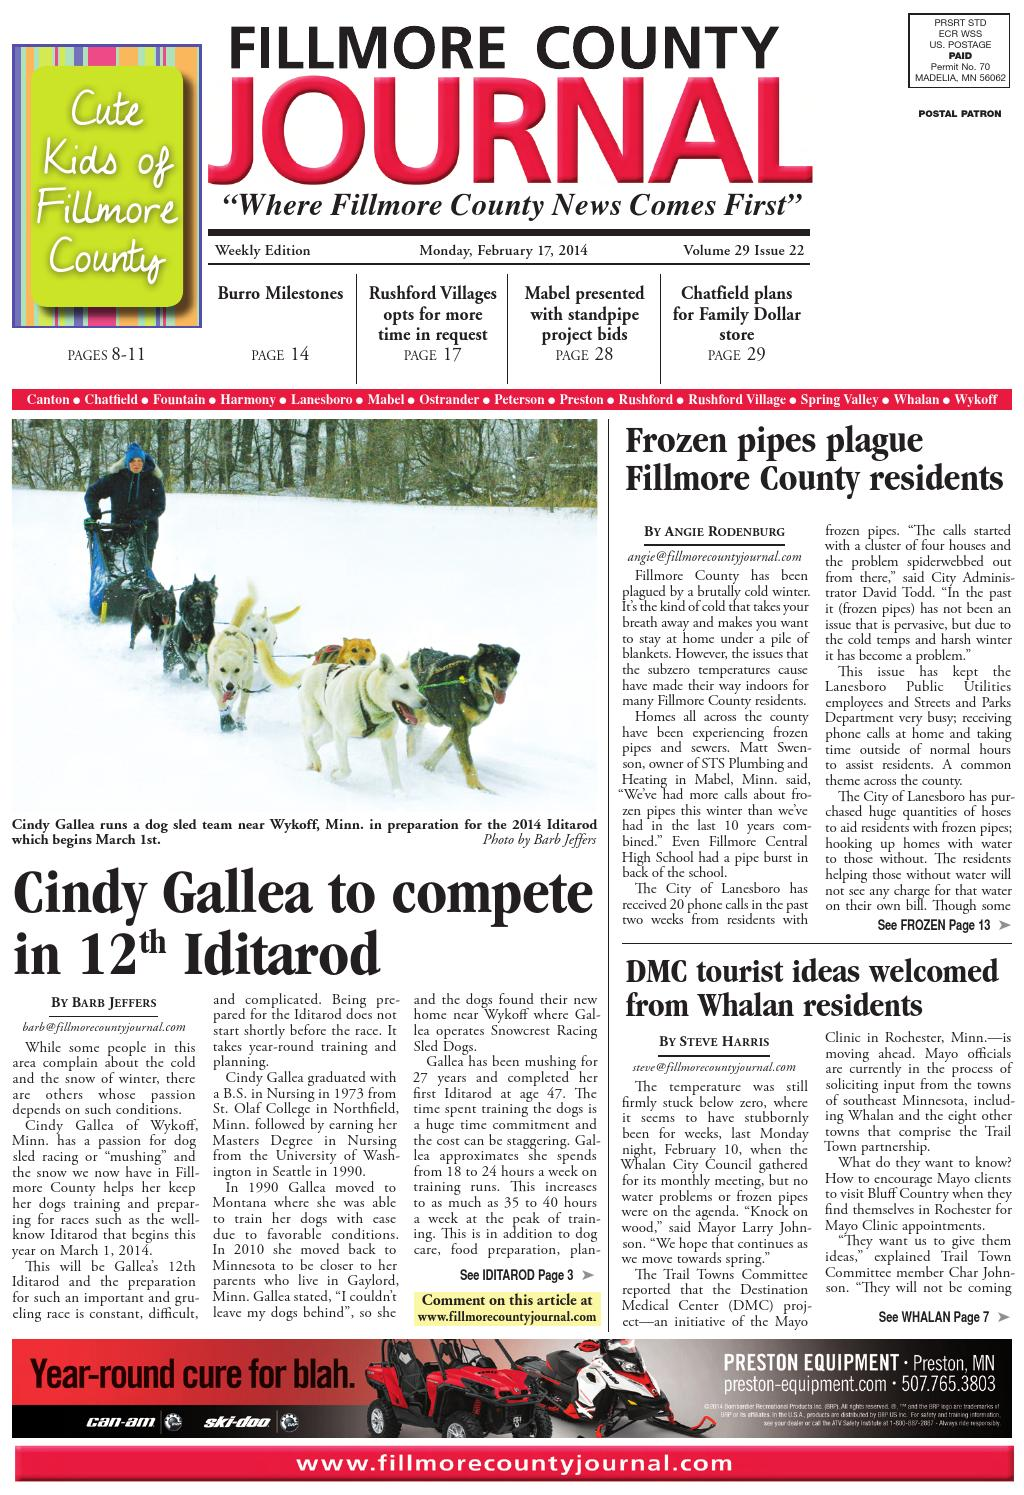 Fillmore County Journal 2 17 14 by Jason Sethre - issuu